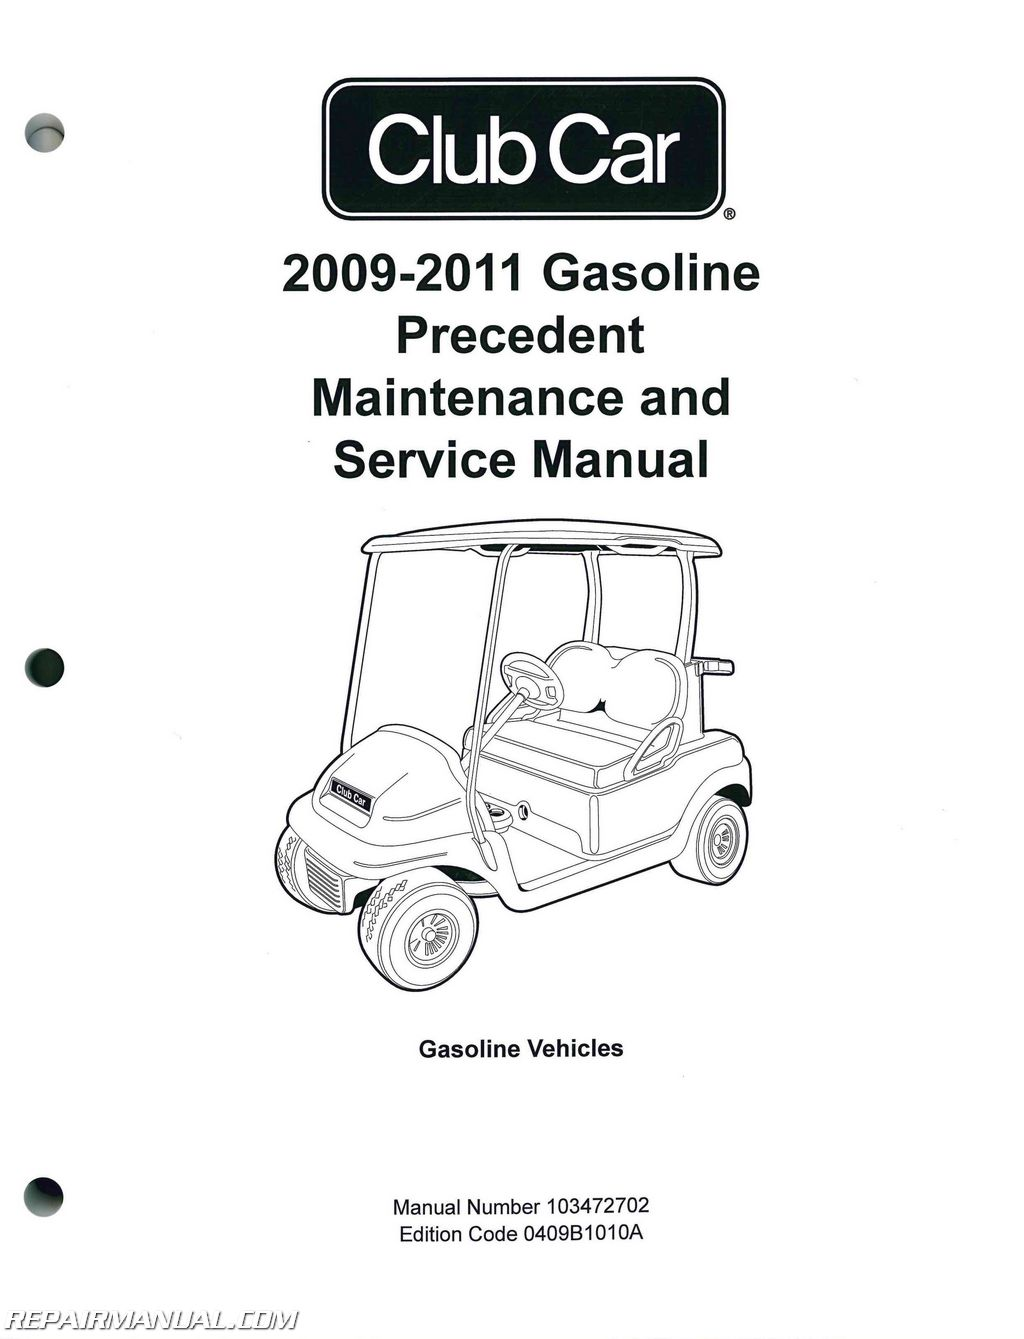 2009 2011 Club Car Gasoline Precedent Maintenance And Service Manual 02 Lincoln Town For Fuse Box